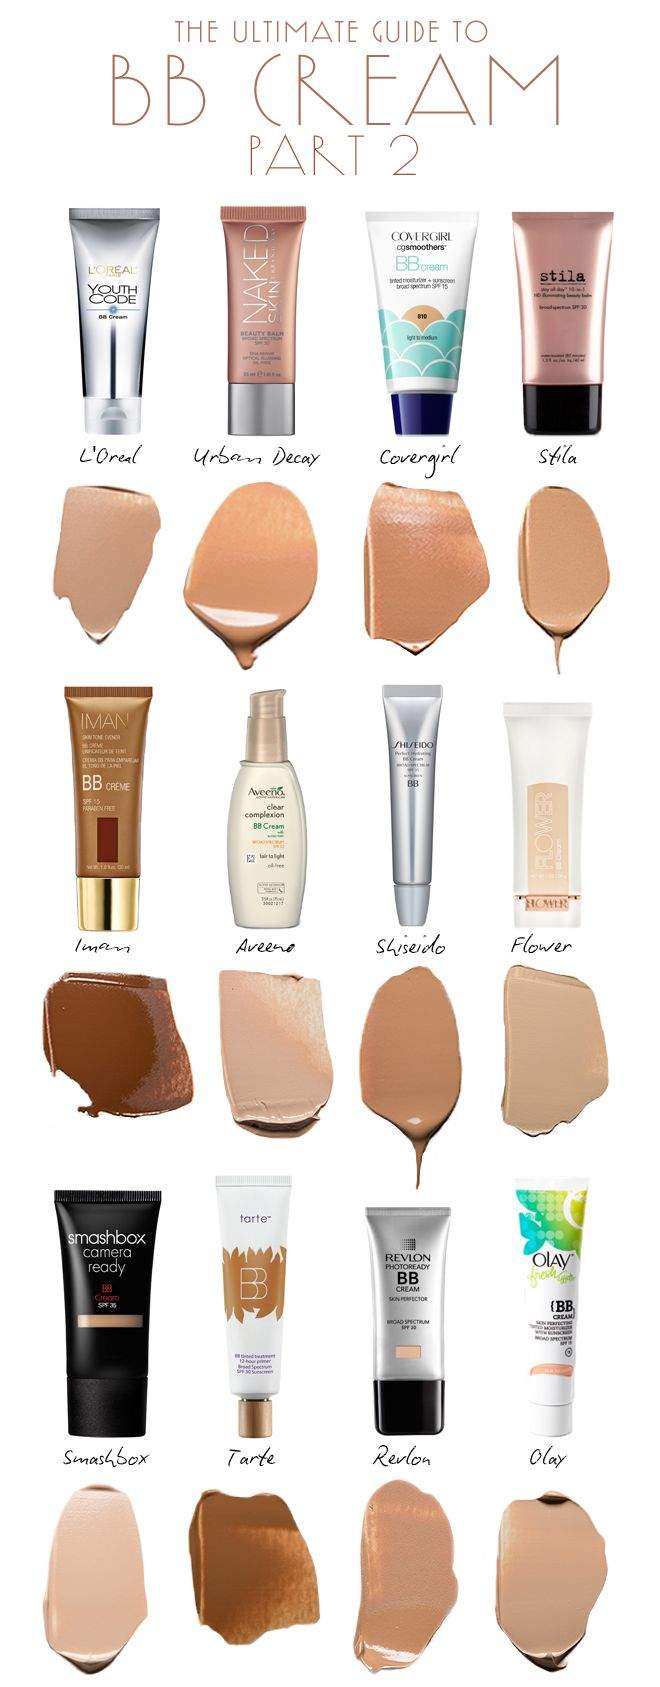 The Ultimate Guide to BB Creams, Part 2    Best for Acne-Prone Skin: Aveeno Clear Complexion BB Cream; one shade. This balm provides coverage for problem skin with light-reflecting minerals that brighten the complexion, and its oil-free formula won't clog pores. Plus, its neutral tint is neither orange nor chalky, making it a good match for fairer skin tones.